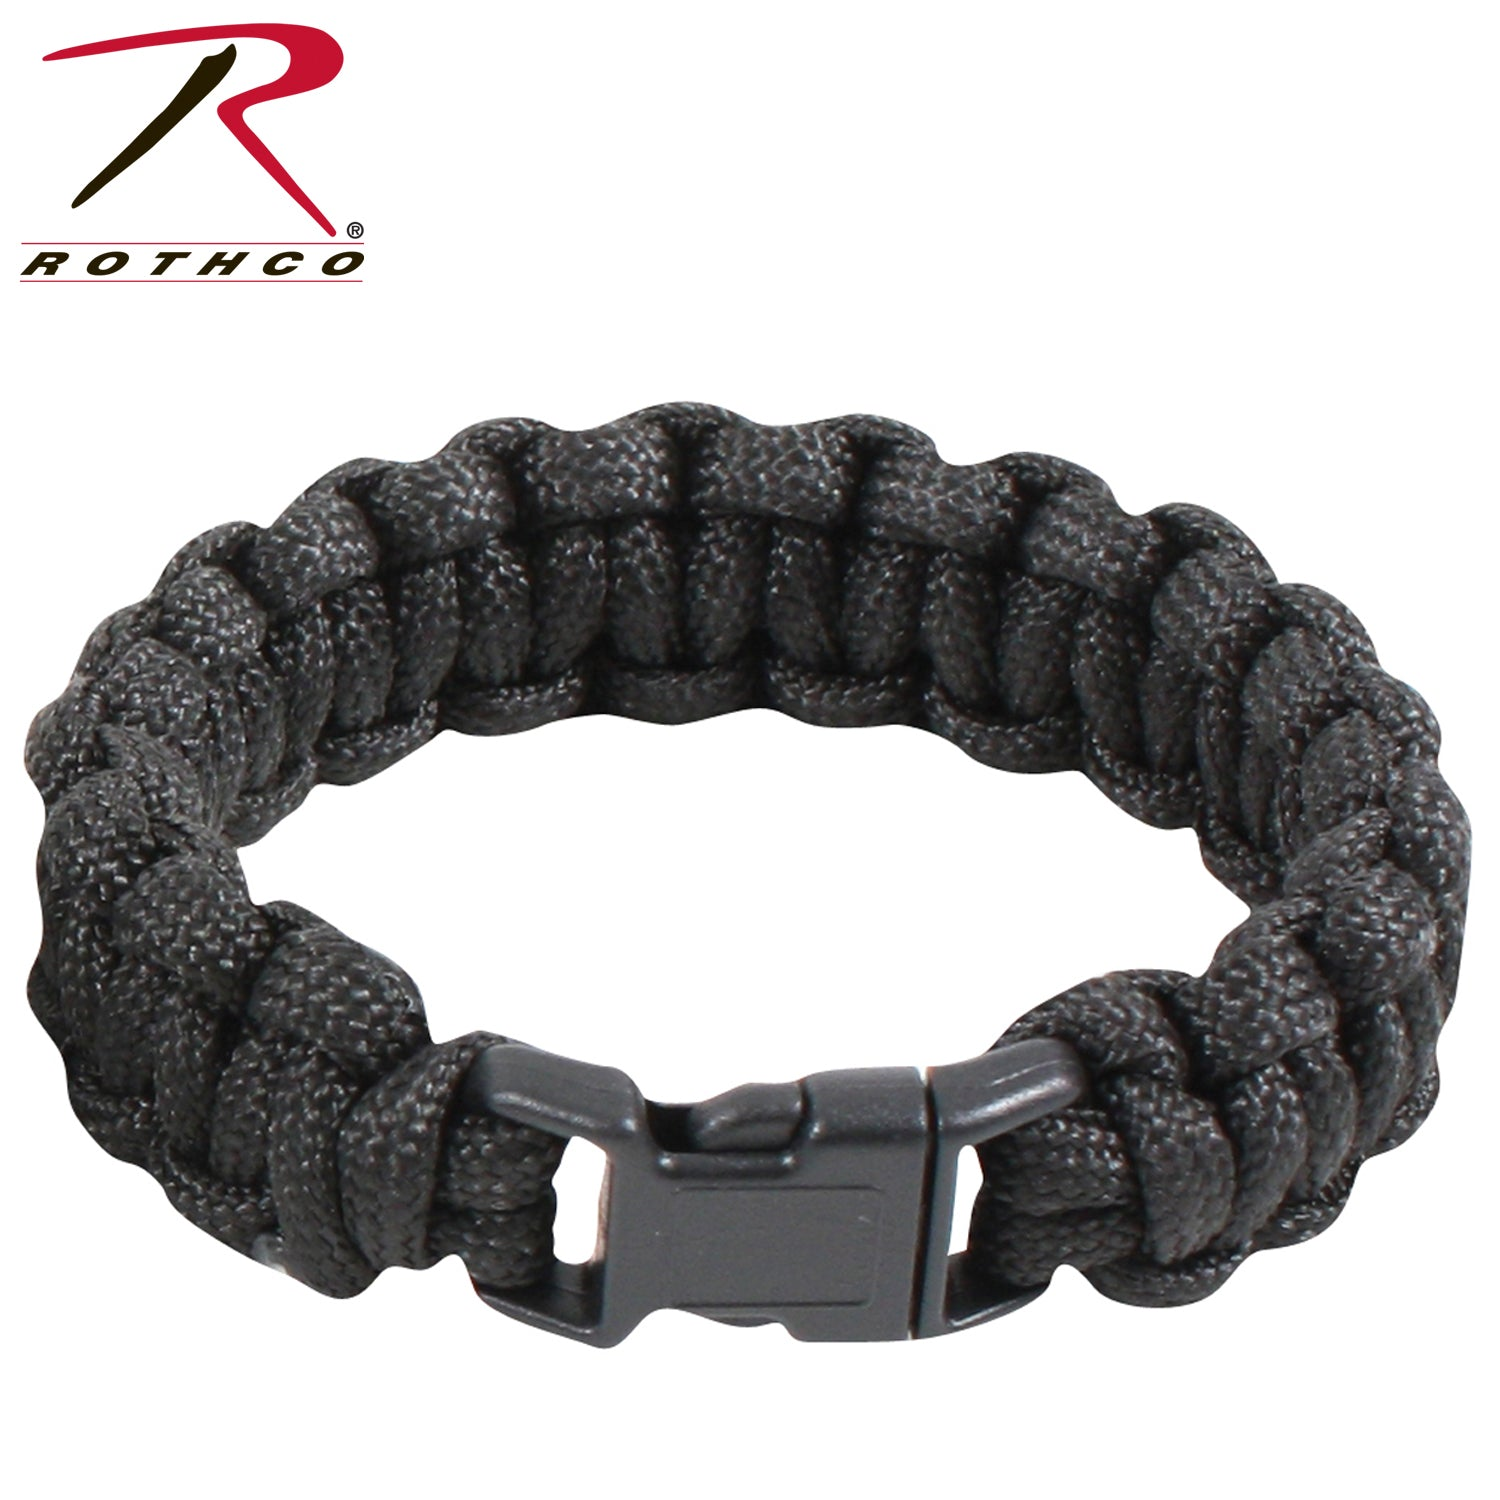 Rothco Solid Color Paracord Bracelet - red-diamond-uniform-police-supply